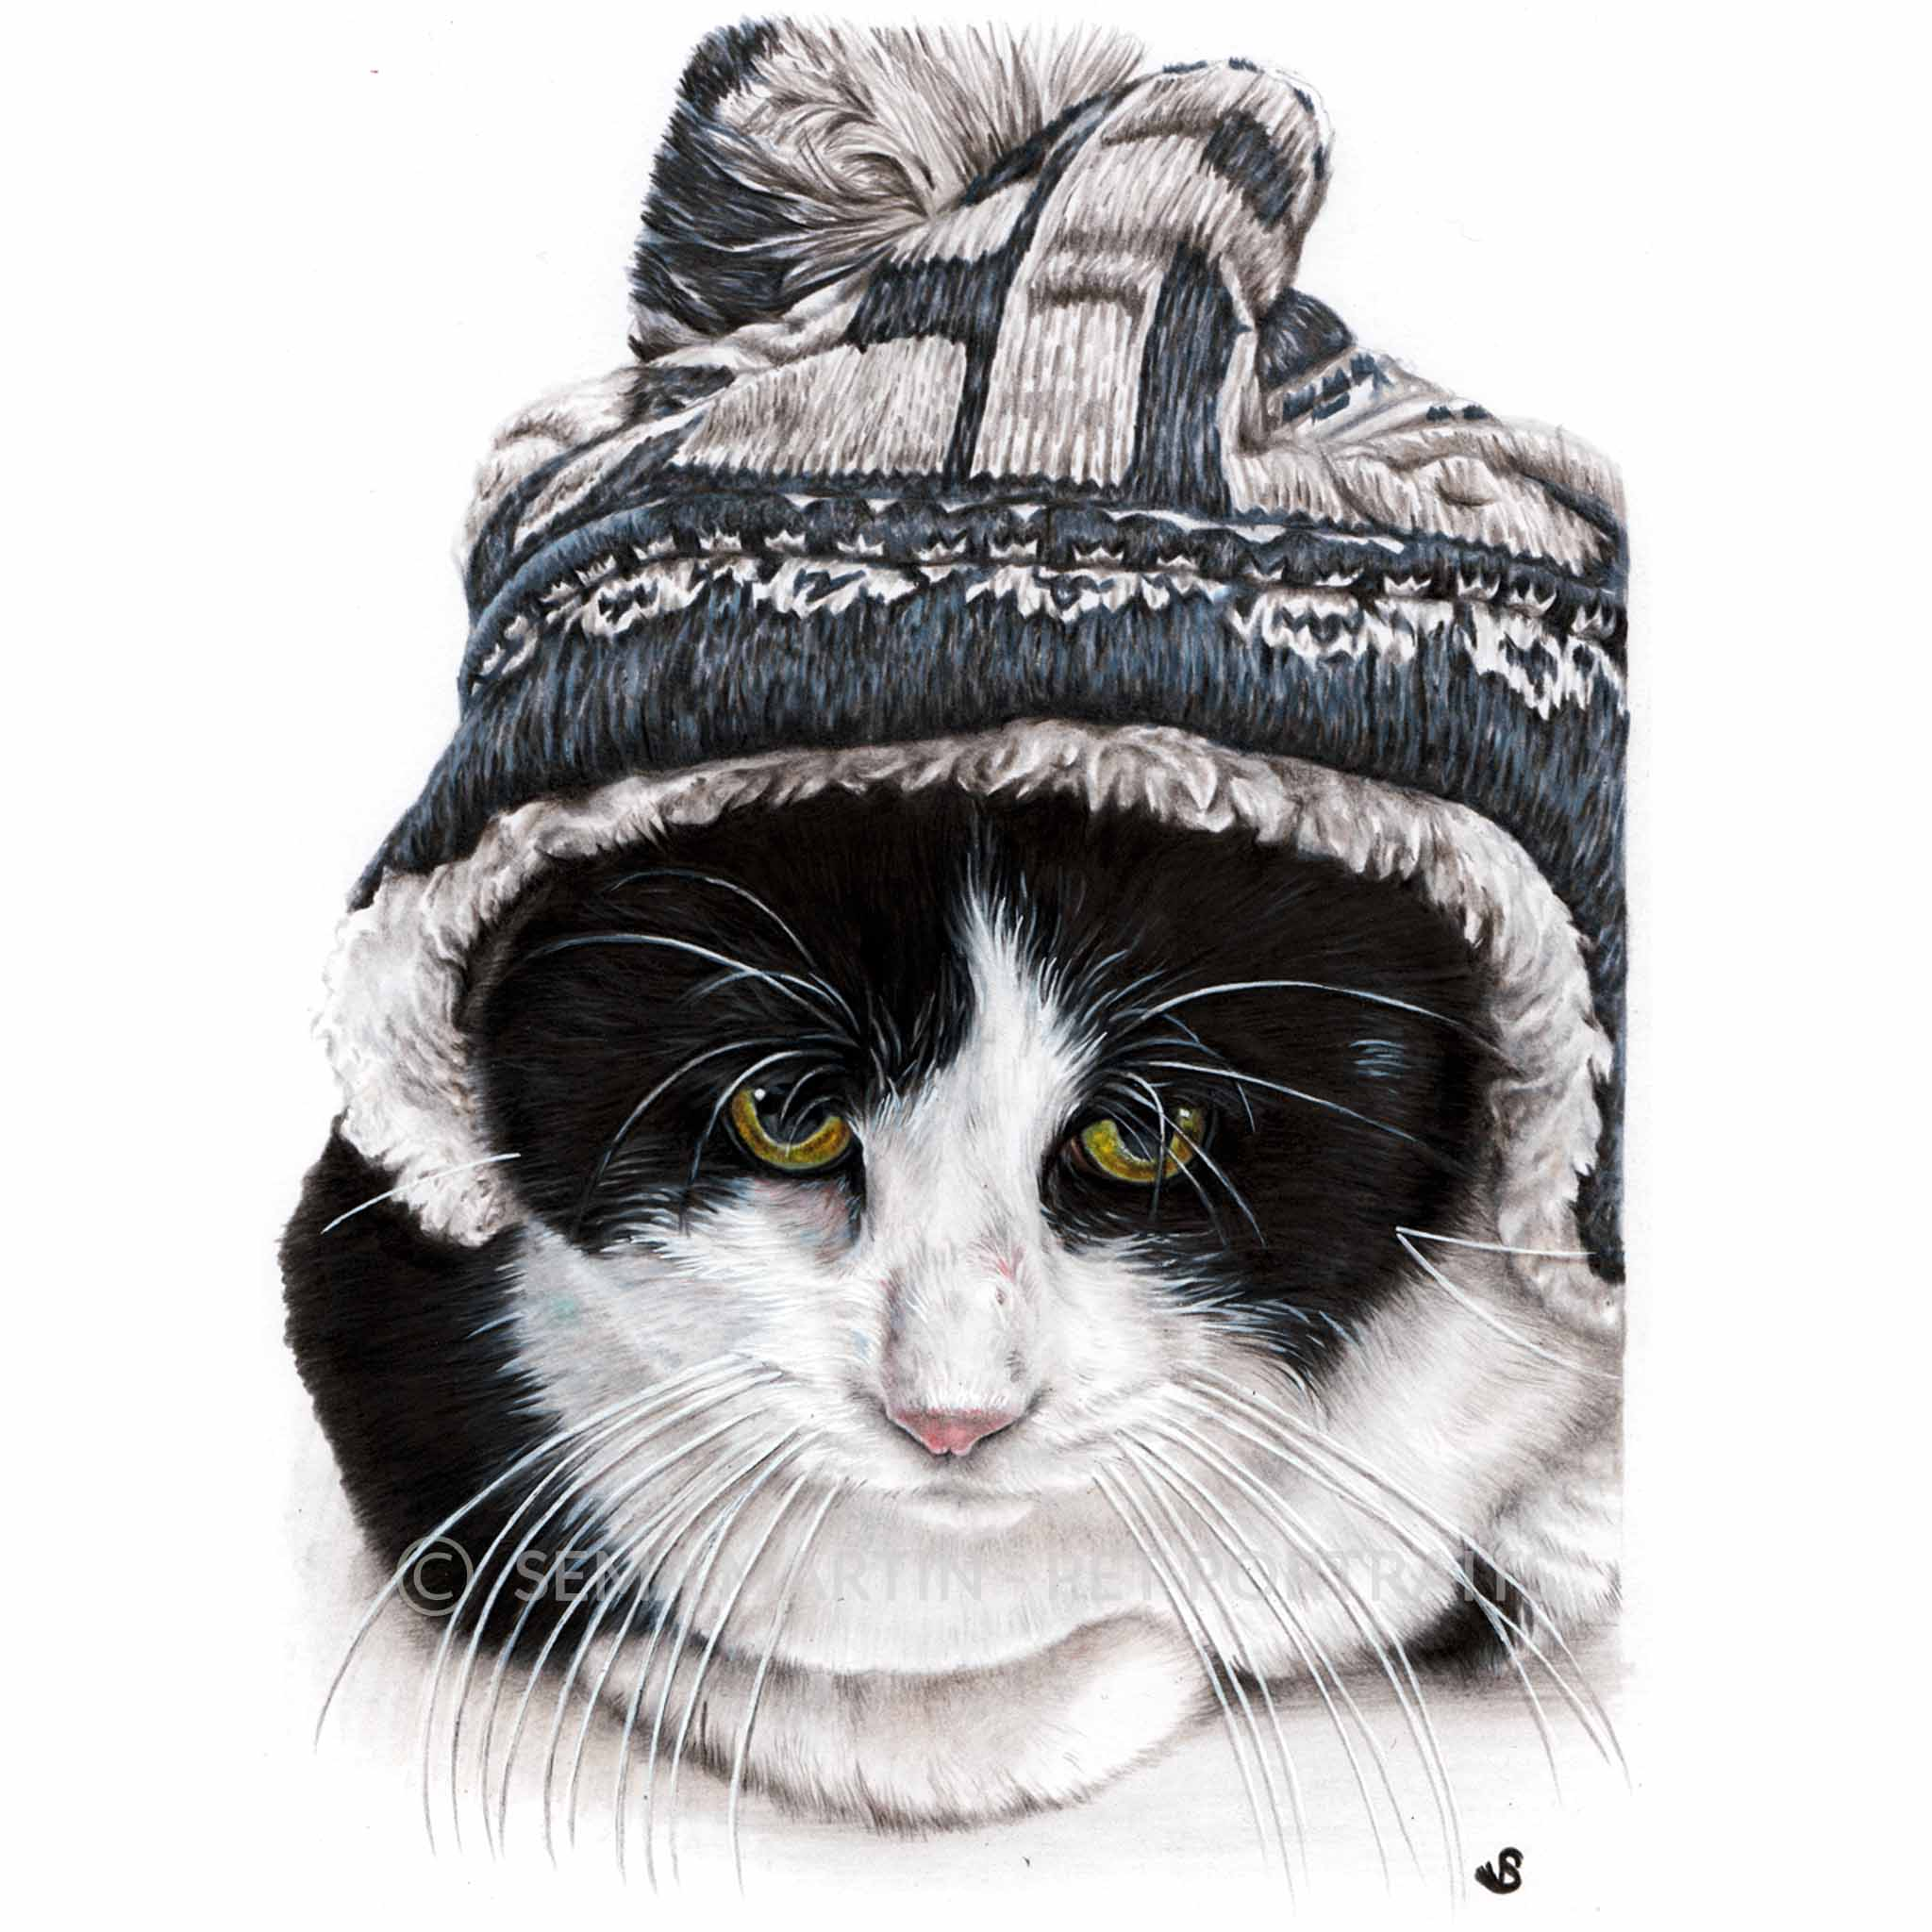 colour pencil cat portrait of tuxedo cat in a wooly hat with yellow eyes by artist sema martin